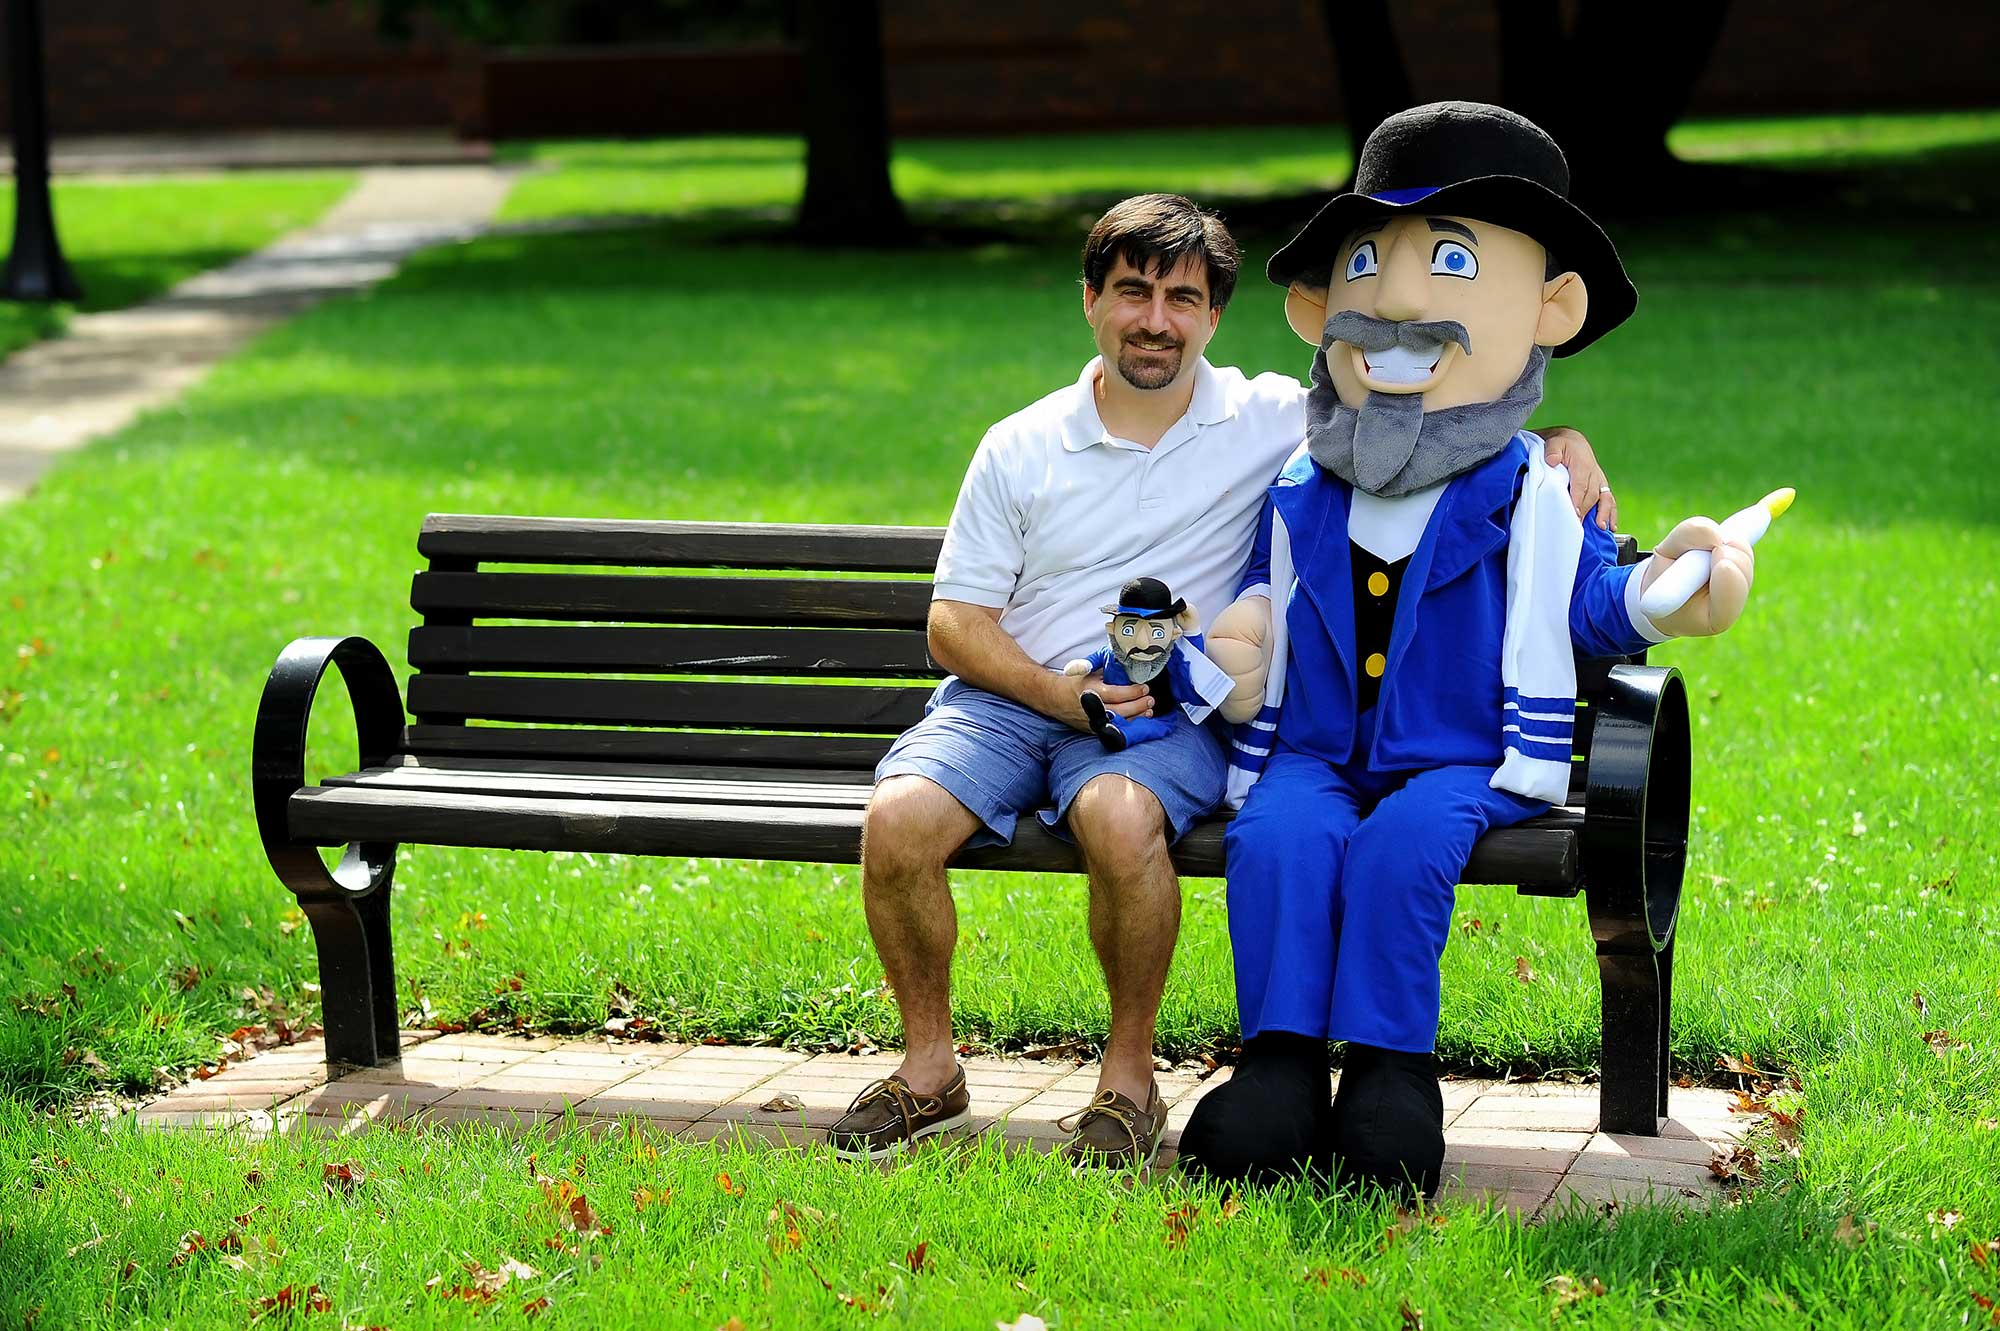 Neal Hoffman holds his Mensch on a Bench toy alongside a life-sized version.